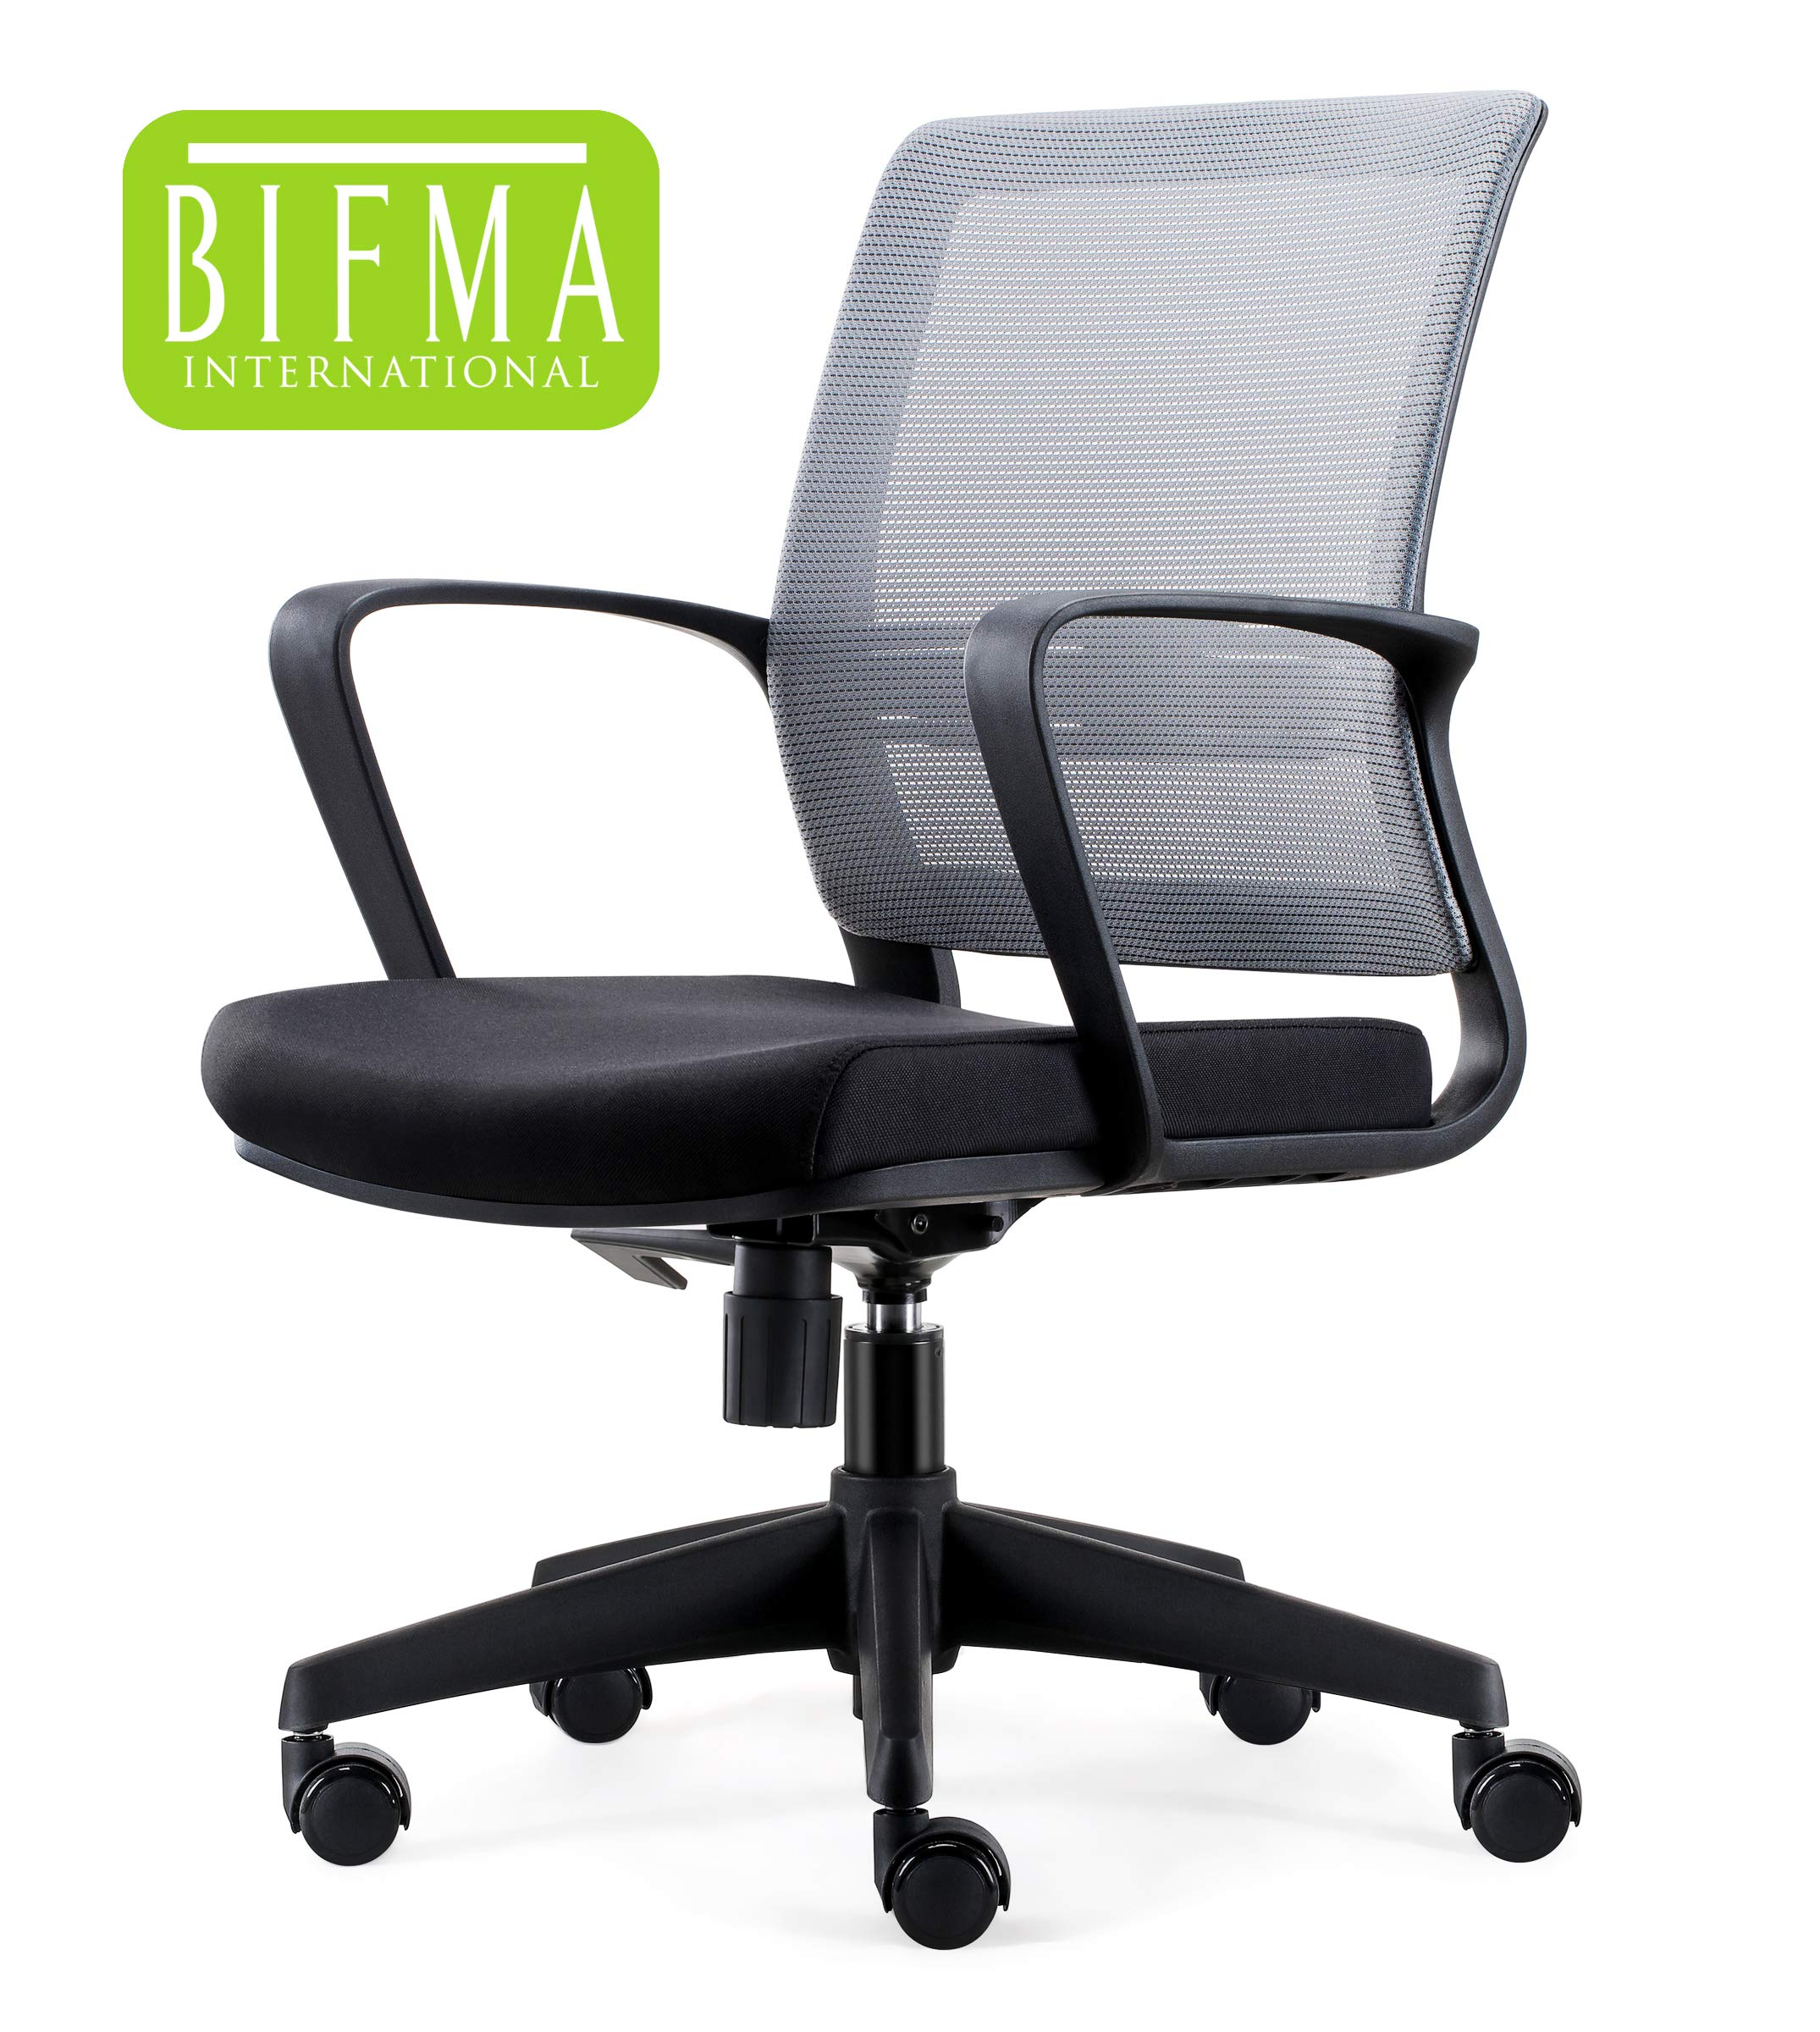 Chairlin Mid-Back Office Chair Conference Task Chair Ergonomic Desk Chair Adjustable Swivel Chair Black